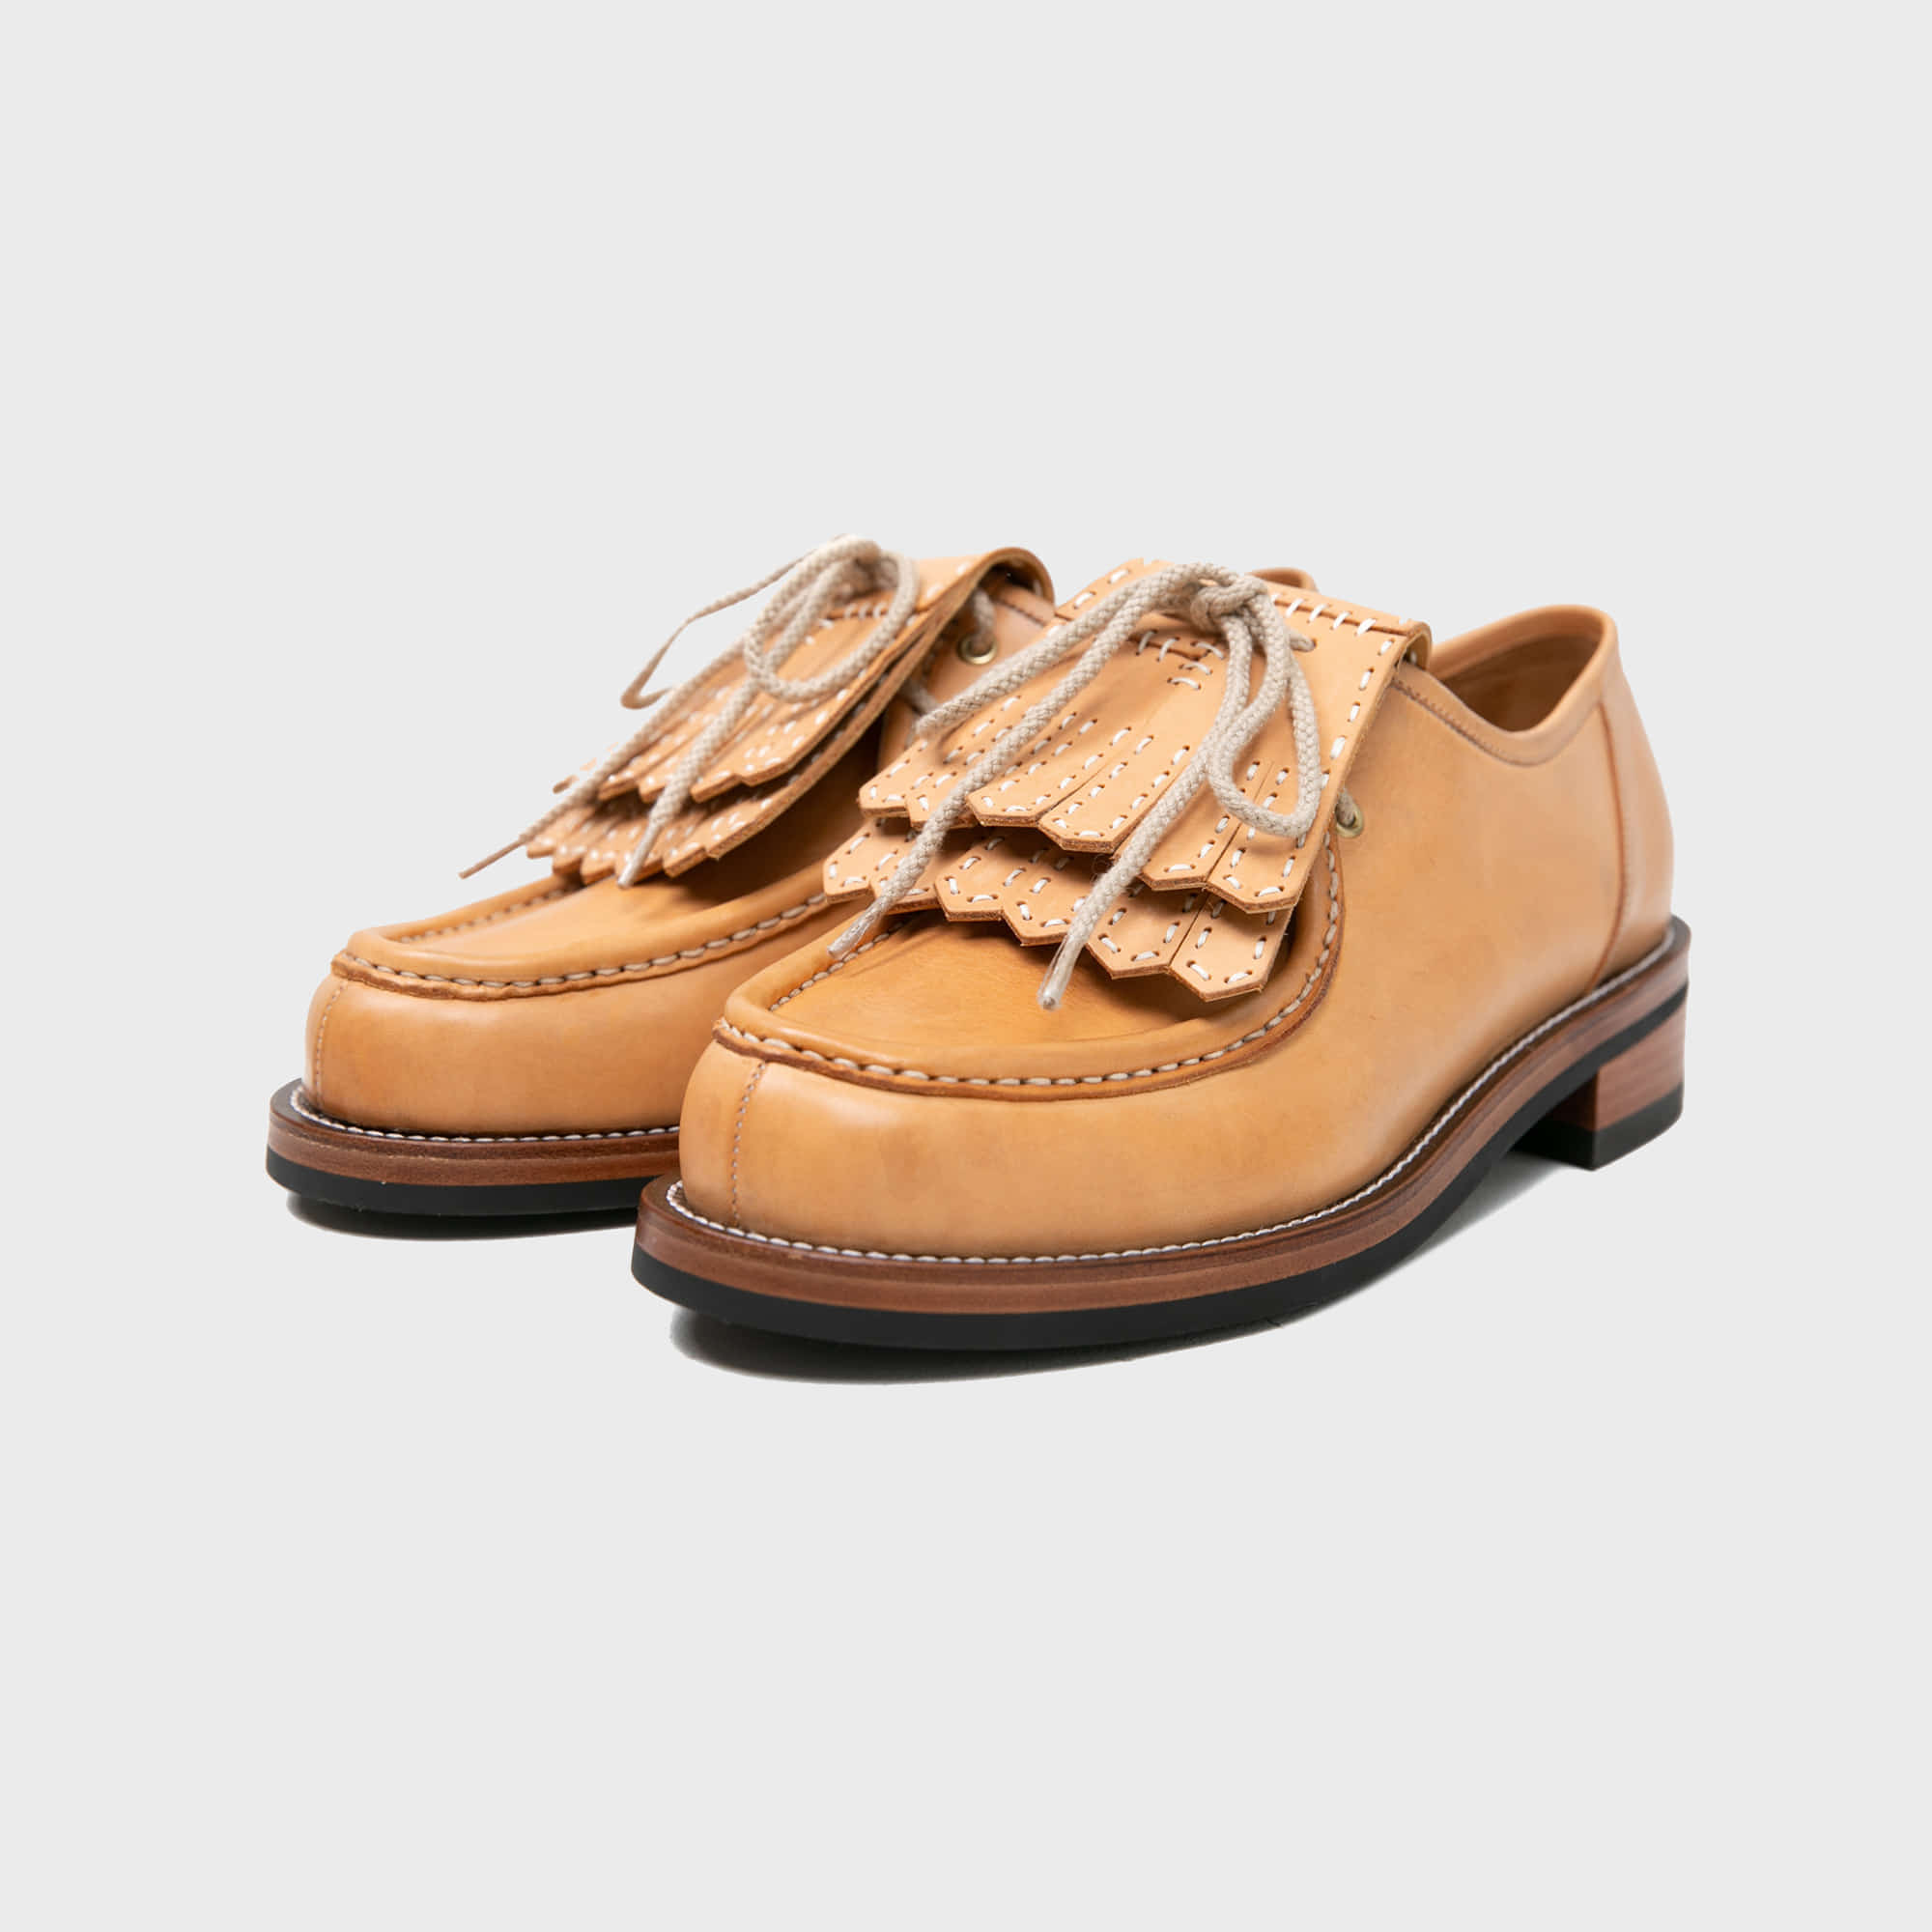 [BILLYS&CO X ANGLAN] Kiltie Tongue Shoes - Natural